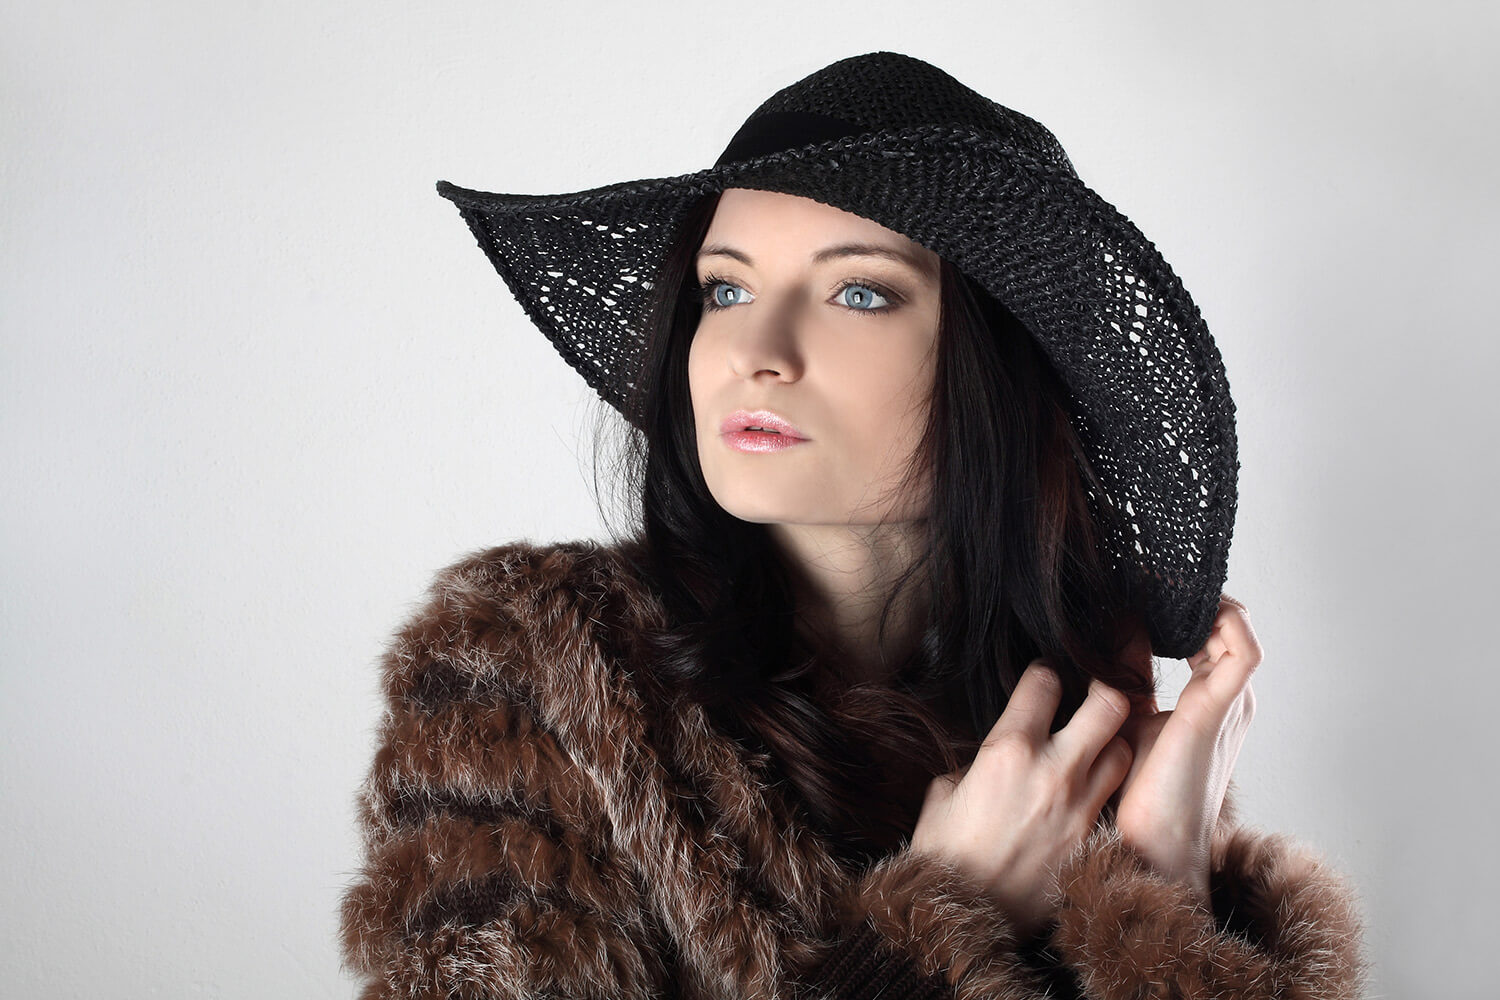 portrait of a woman in a fur jacket and with a hat on a light background